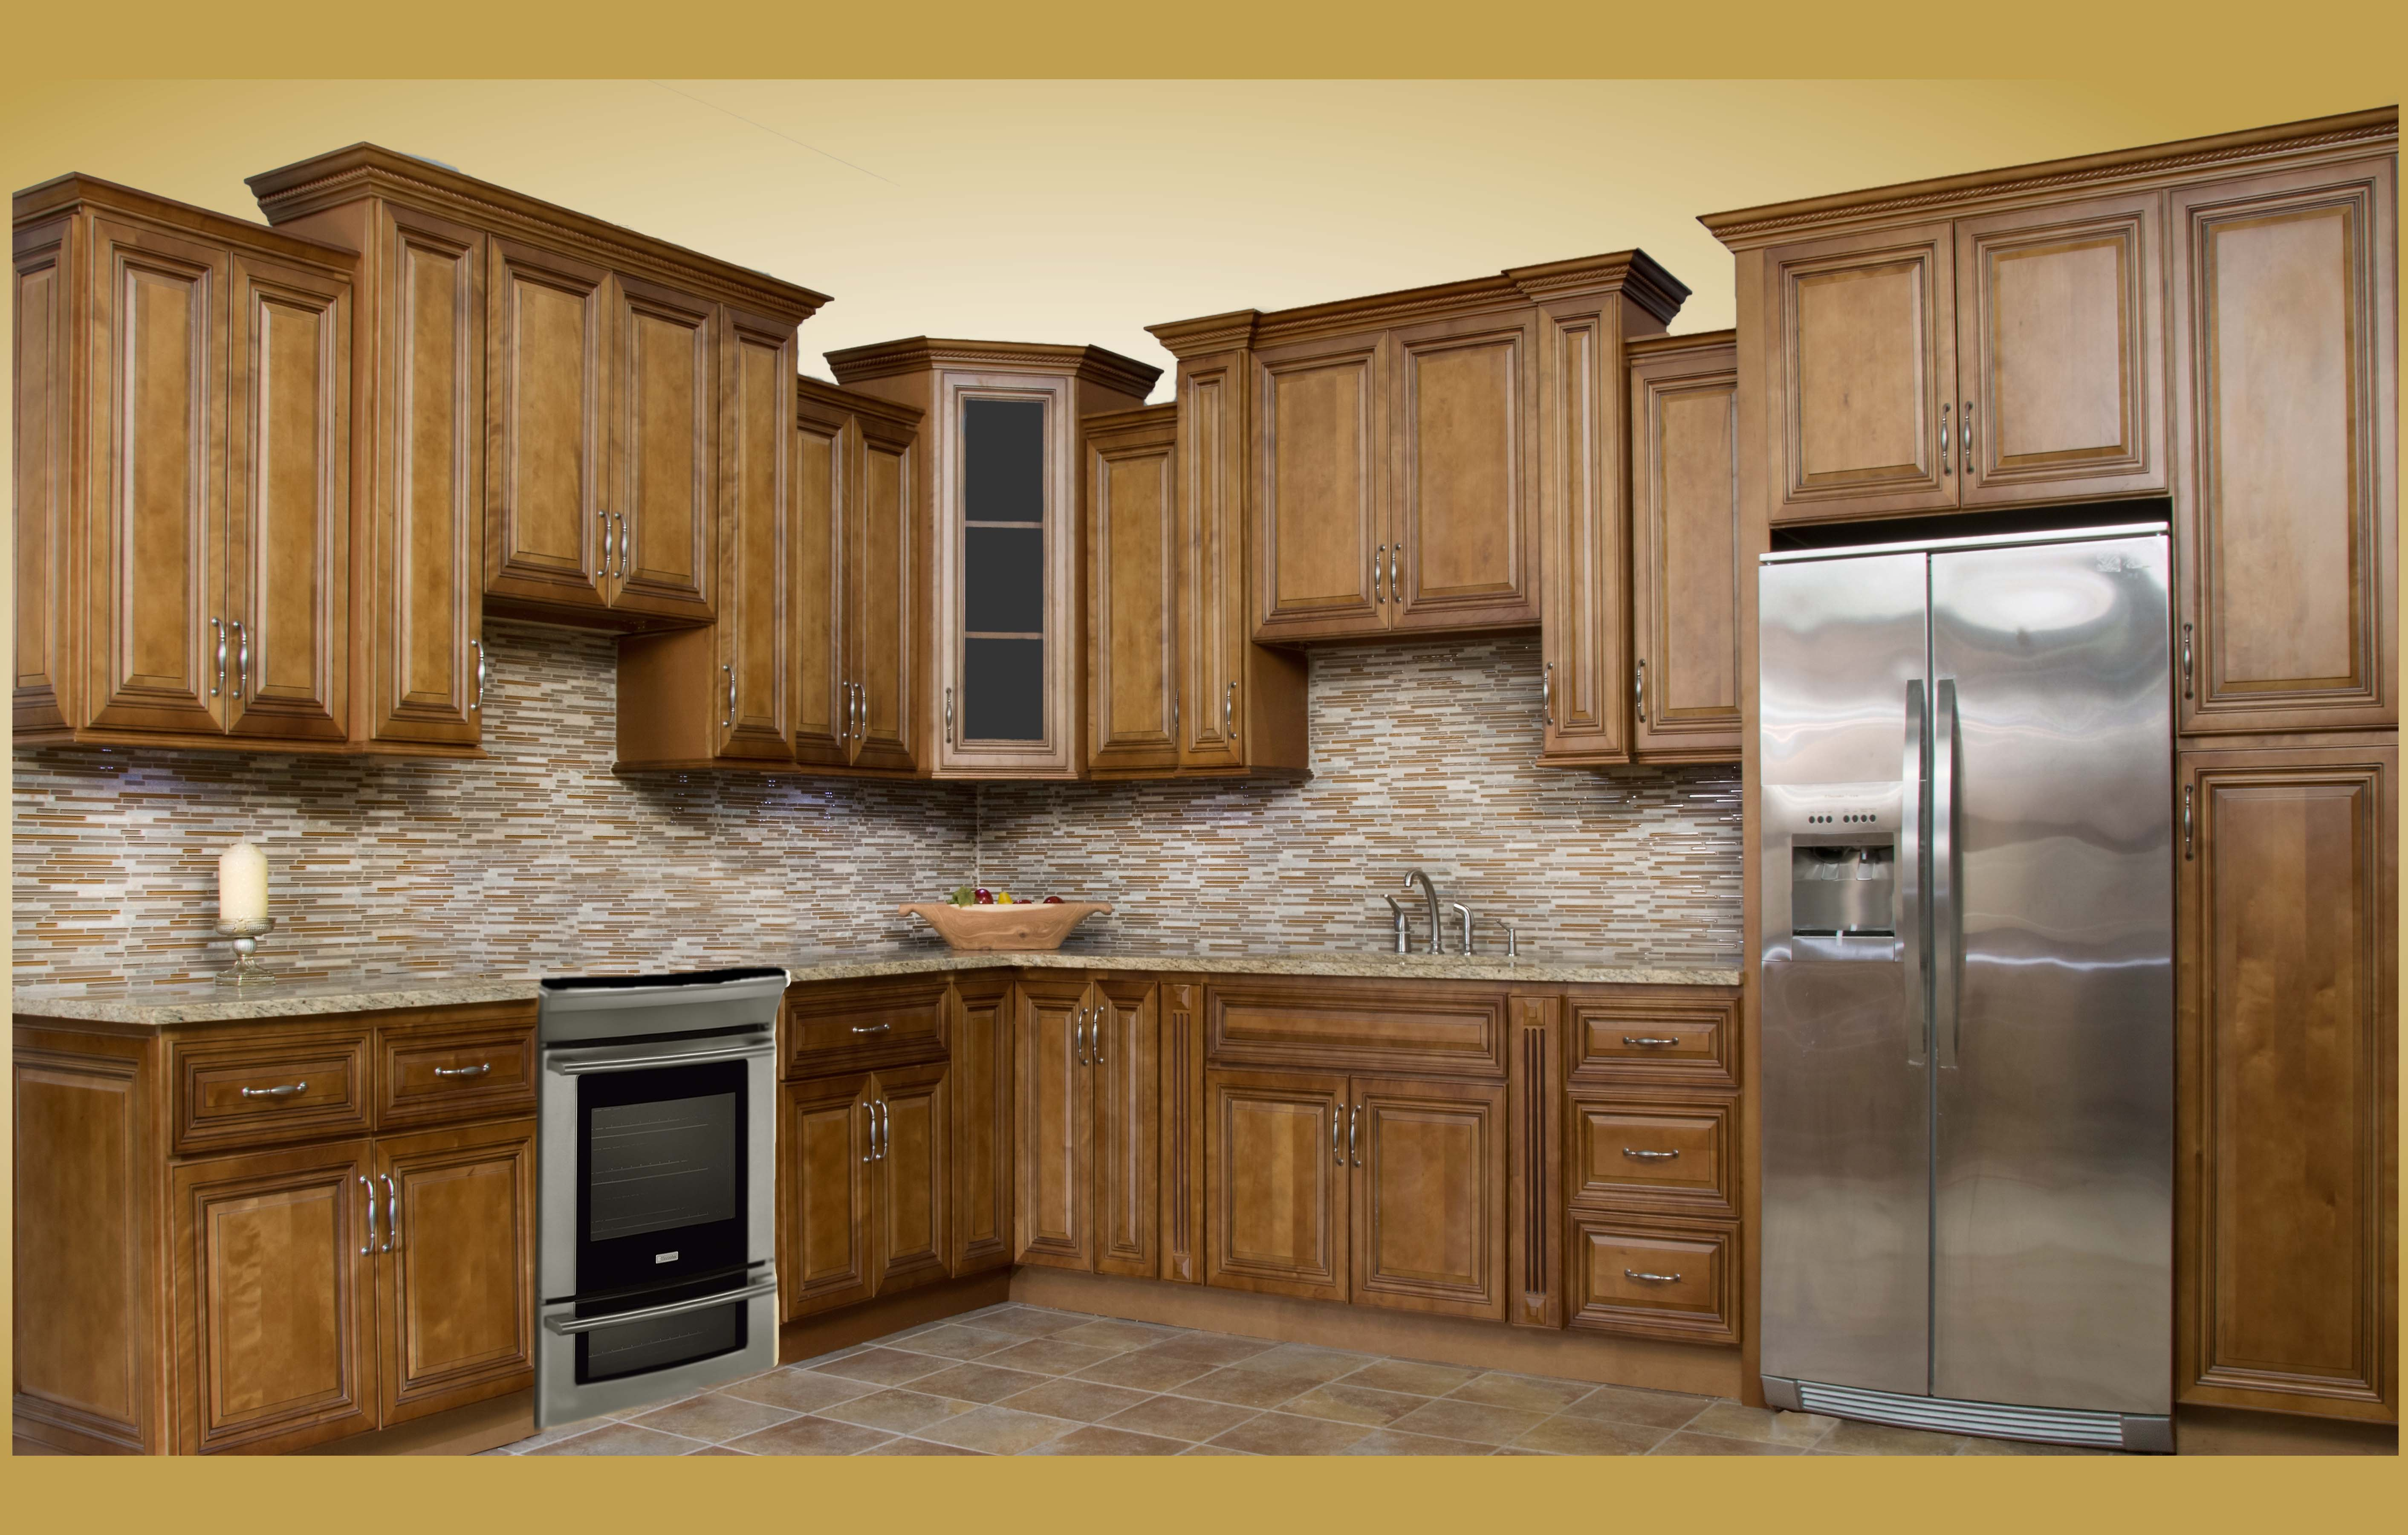 Kitchen Design Store Knoxville Tn Special Order Cabinets New Home Improvement Products At Discount